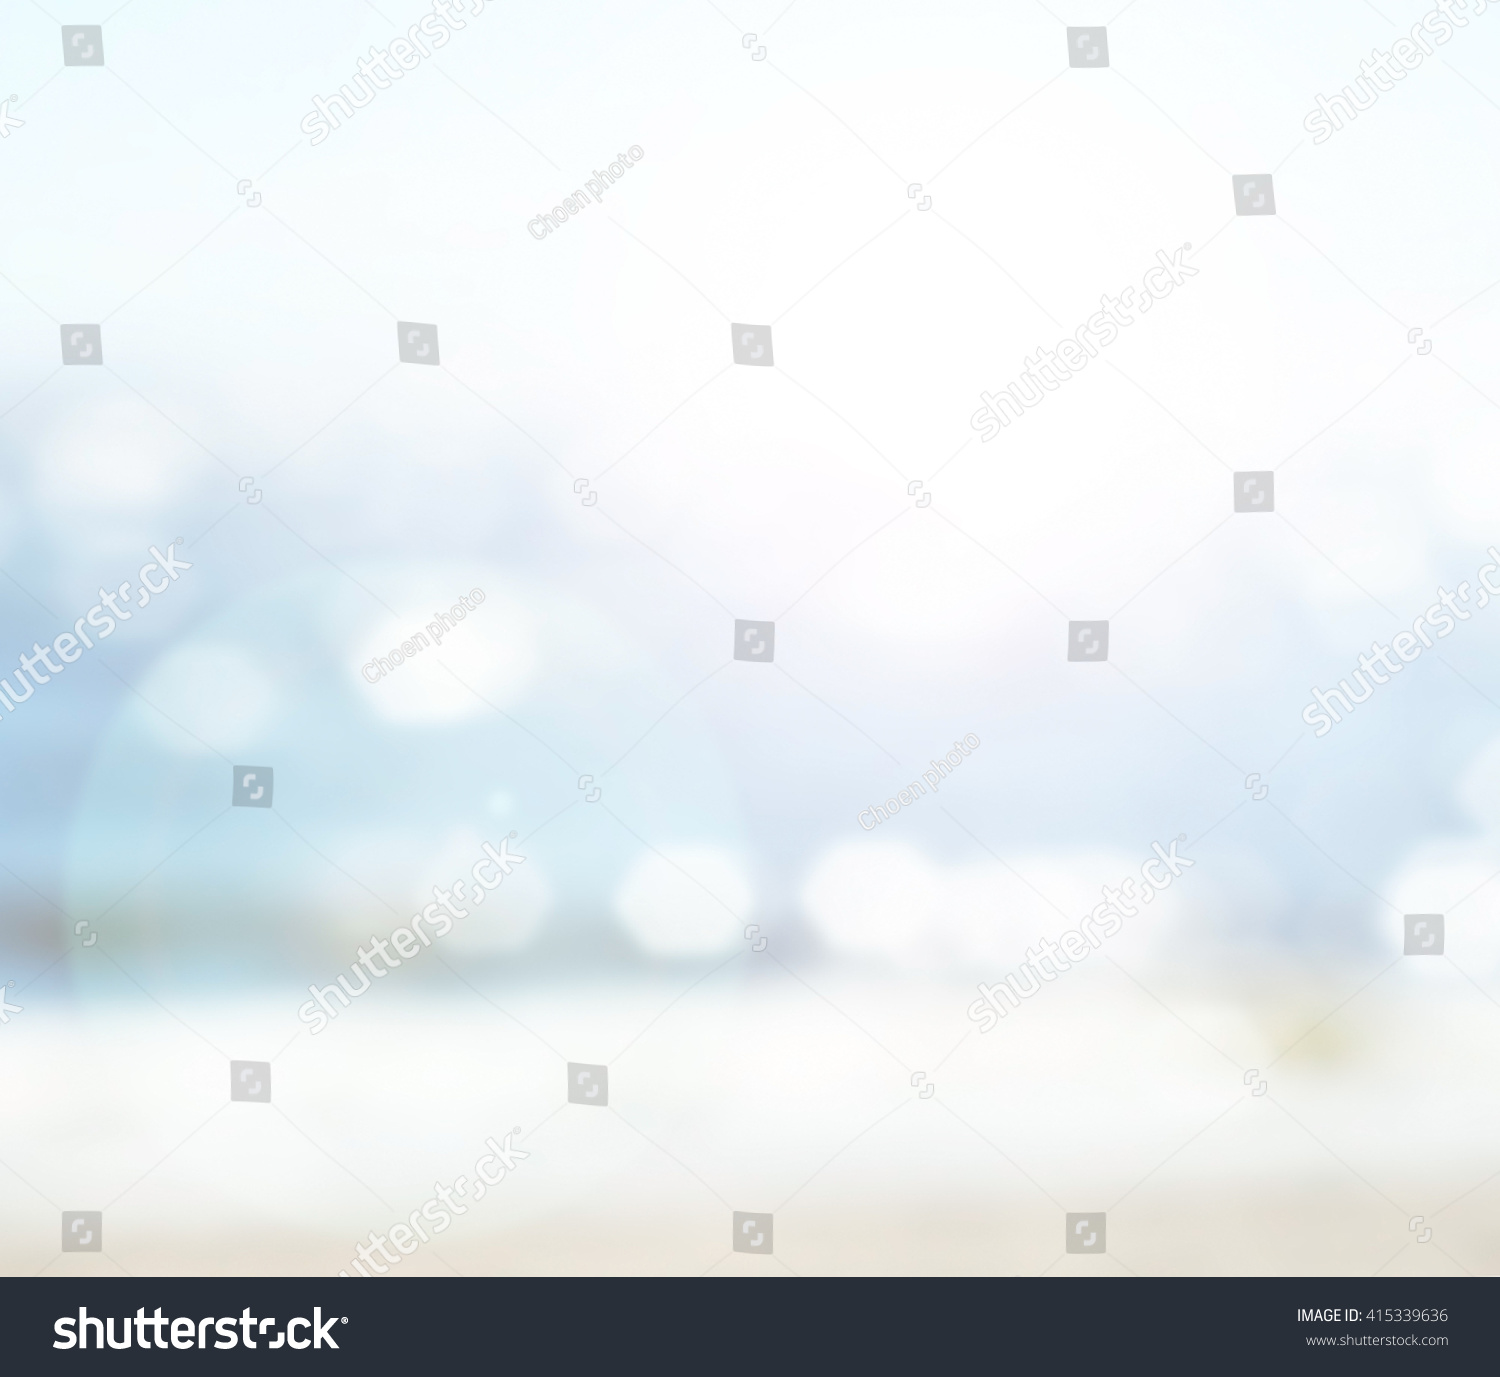 Background Of Blurred Beach And Sea Waves With Bokeh: Sea Bokeh Blur Background Beach Relieved Stock Photo